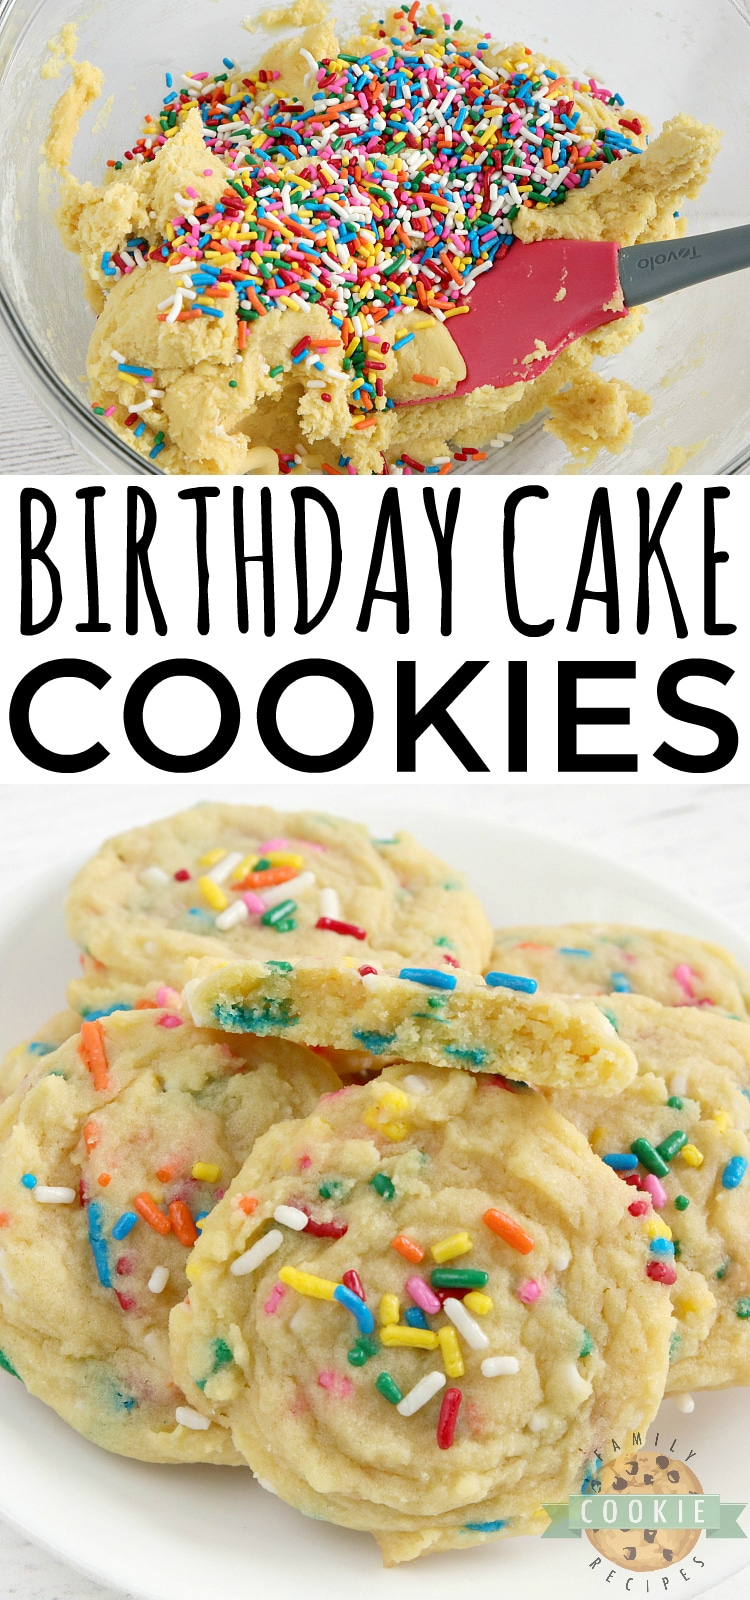 Birthday Cake Cookies are soft vanilla cookies with lots of sprinkles! This simple cookie recipe tastes like your favorite birthday cake in cookie form. via @familycookierecipes